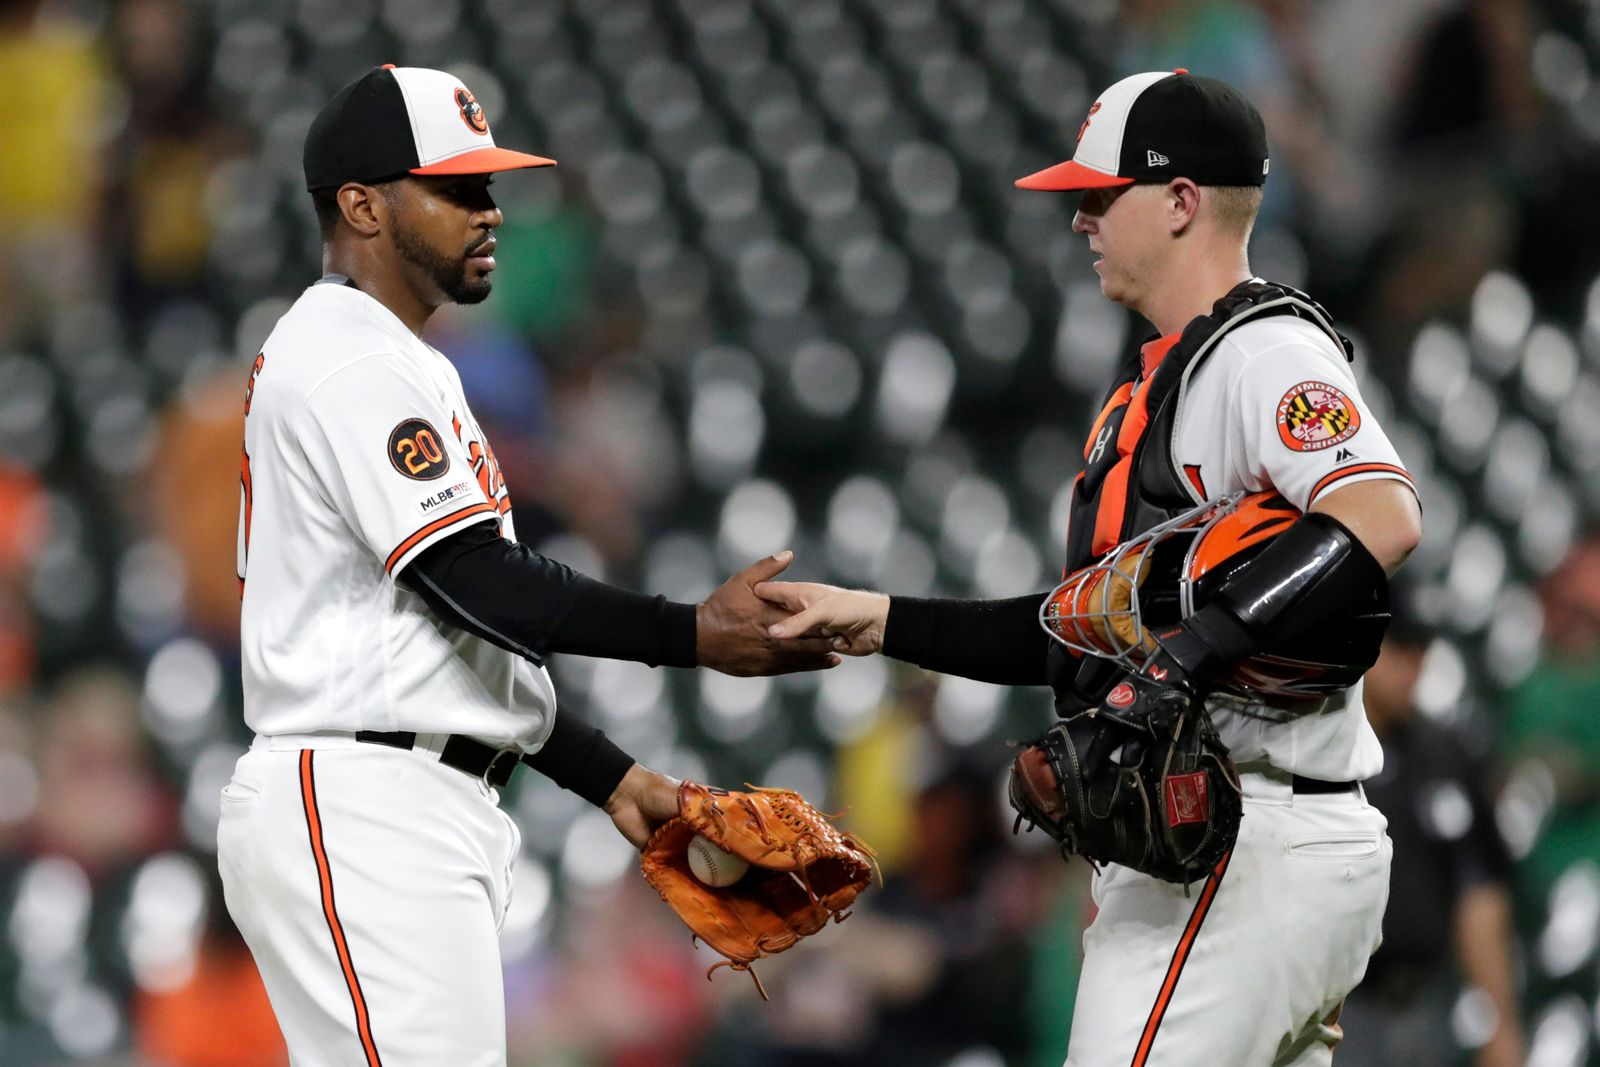 Baltimore Orioles relief pitcher Mychal Givens left, shakes hands with catcher Chance Sisco after the Orioles defeated the Washington Nationals 9-2 in a baseball game Wednesday, July 17, 2019, in Baltimore. (AP Photo/Julio Cortez)